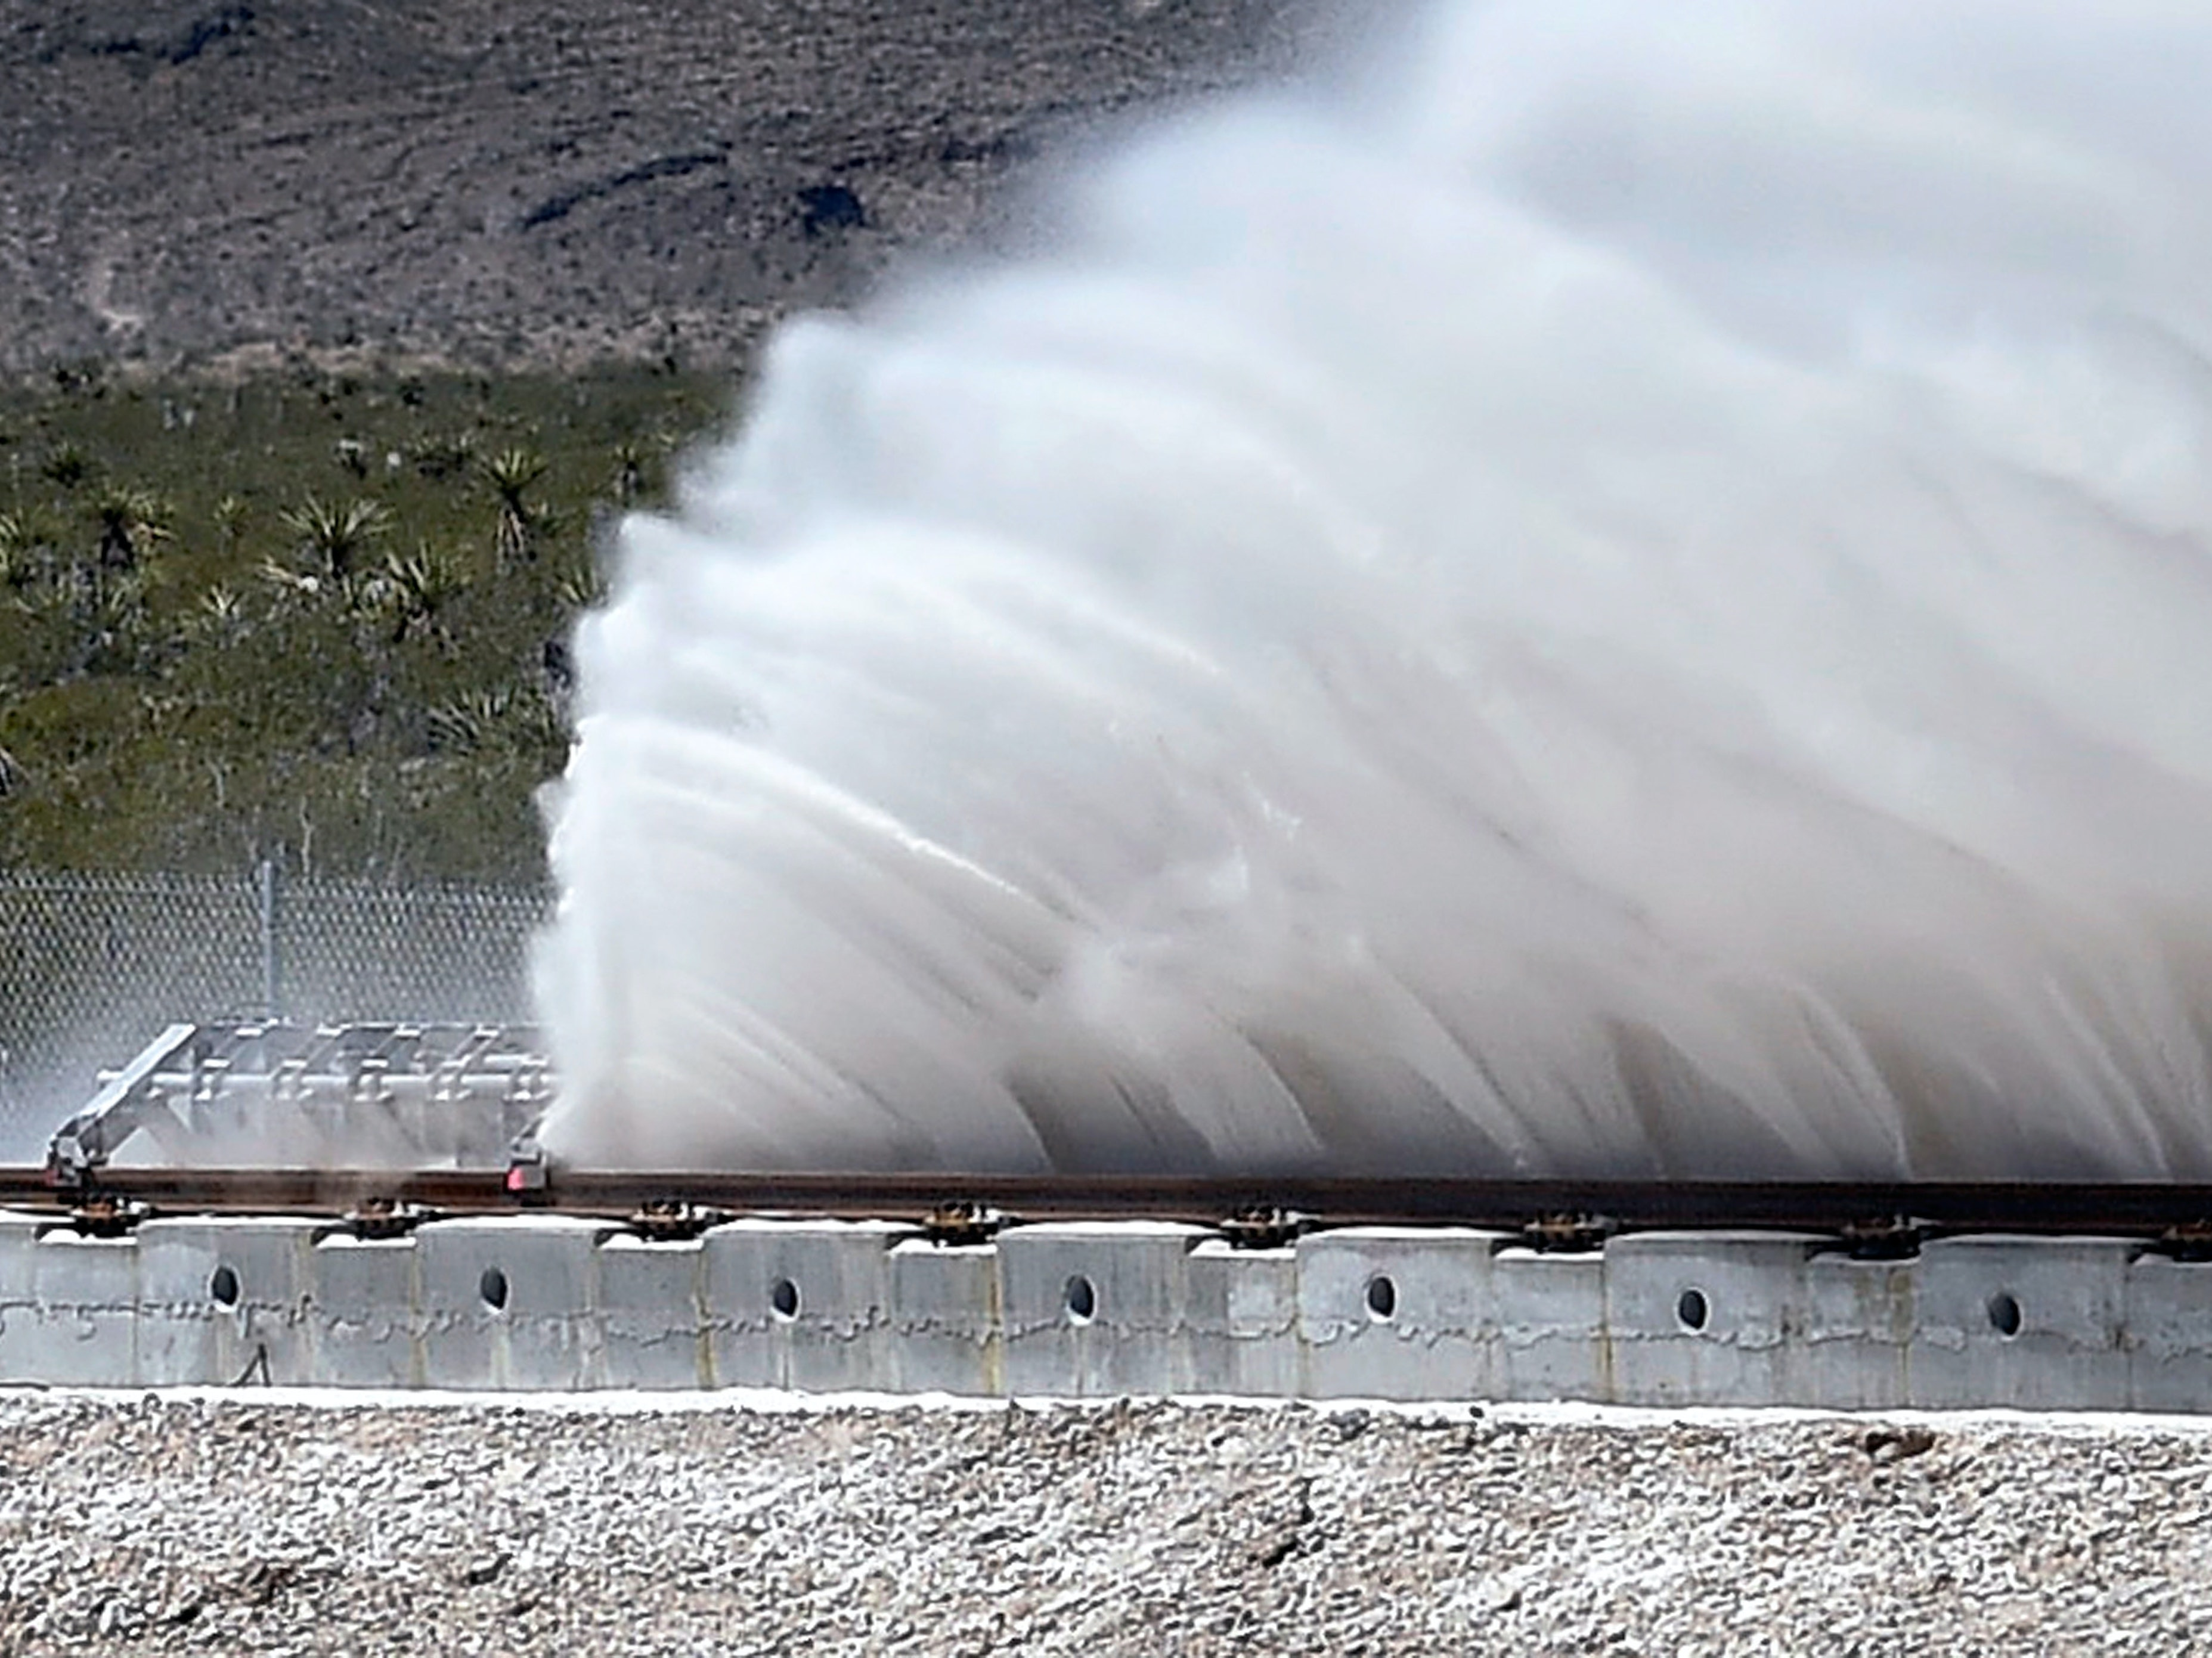 NORTH LAS VEGAS, NV - MAY 11:  Sand is displaced as a test sled is slowed during the first test of the propulsion system at the Hyperloop One Test and Safety site on May 11, 2016 in North Las Vegas, Nevada. The company plans to create a fully operational hyperloop system by 2020.  (Photo by David Becker/Getty Images,)